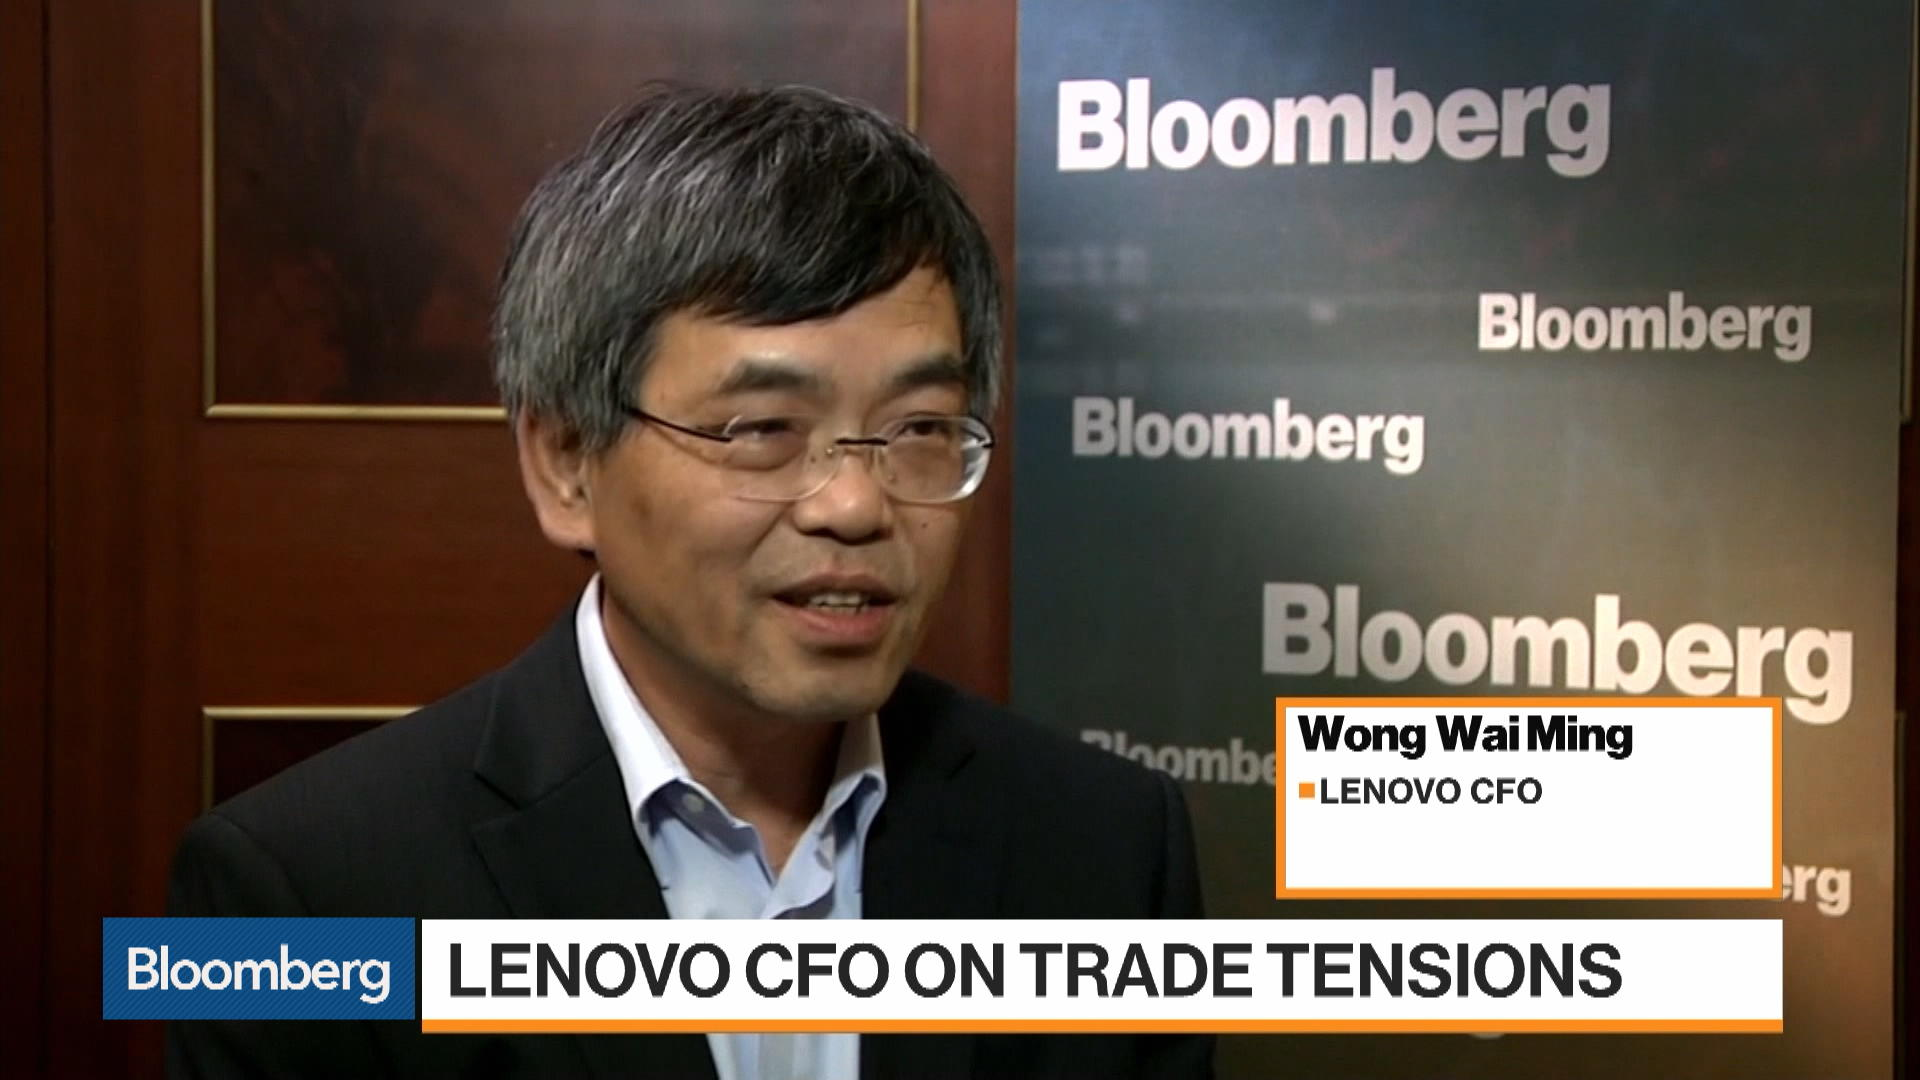 Lenovo Has Various Plans to Deal With Impact of U.S.-China Tensions: CFO